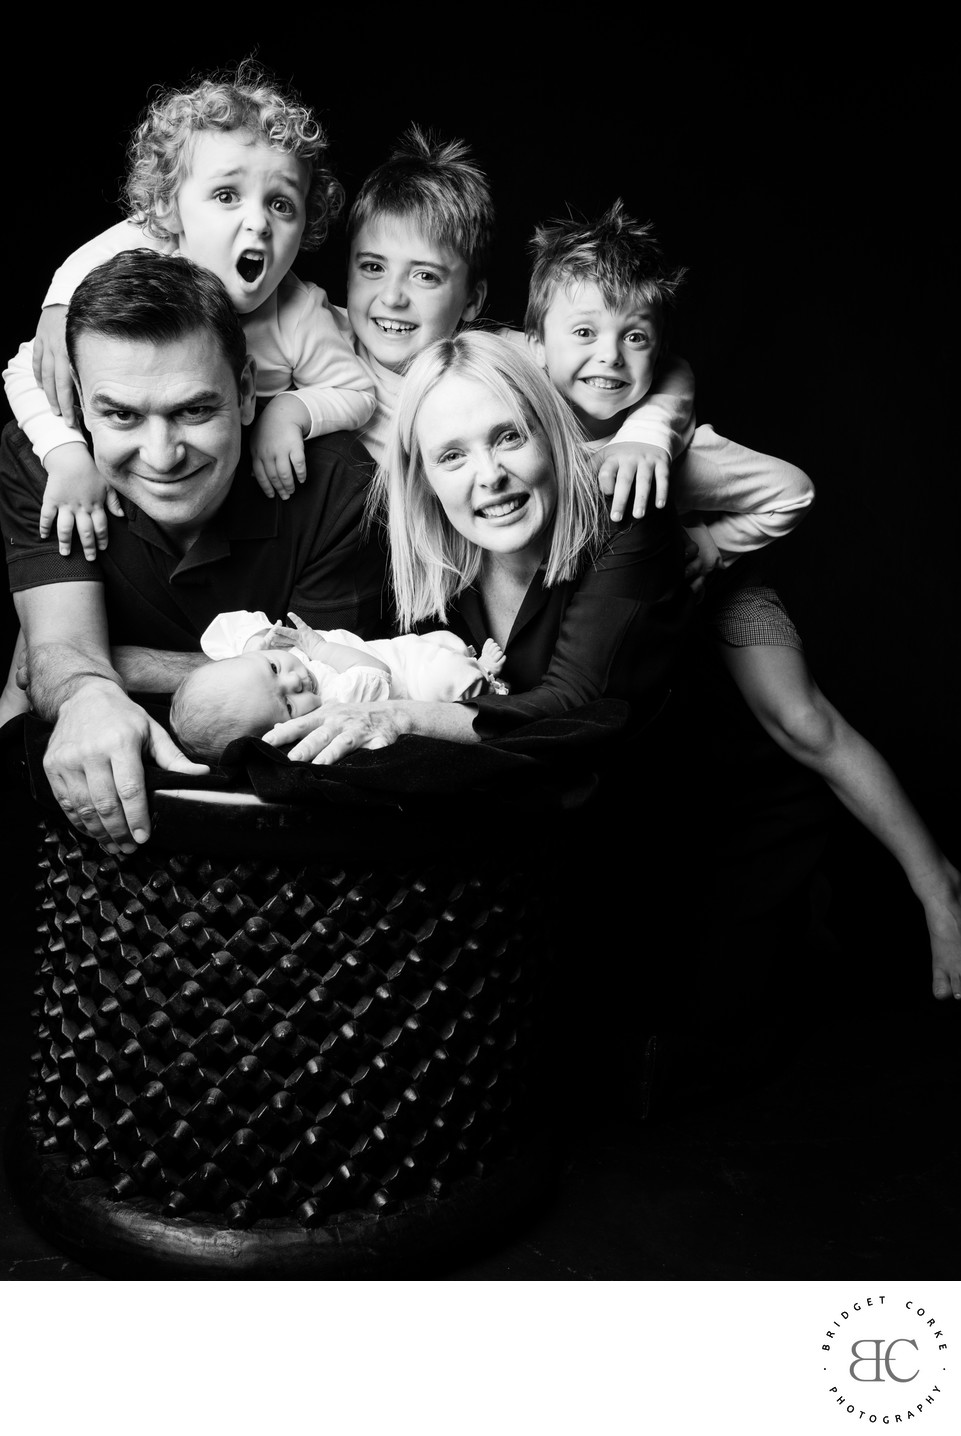 JOHANNESBURG: Family Studio Photographer